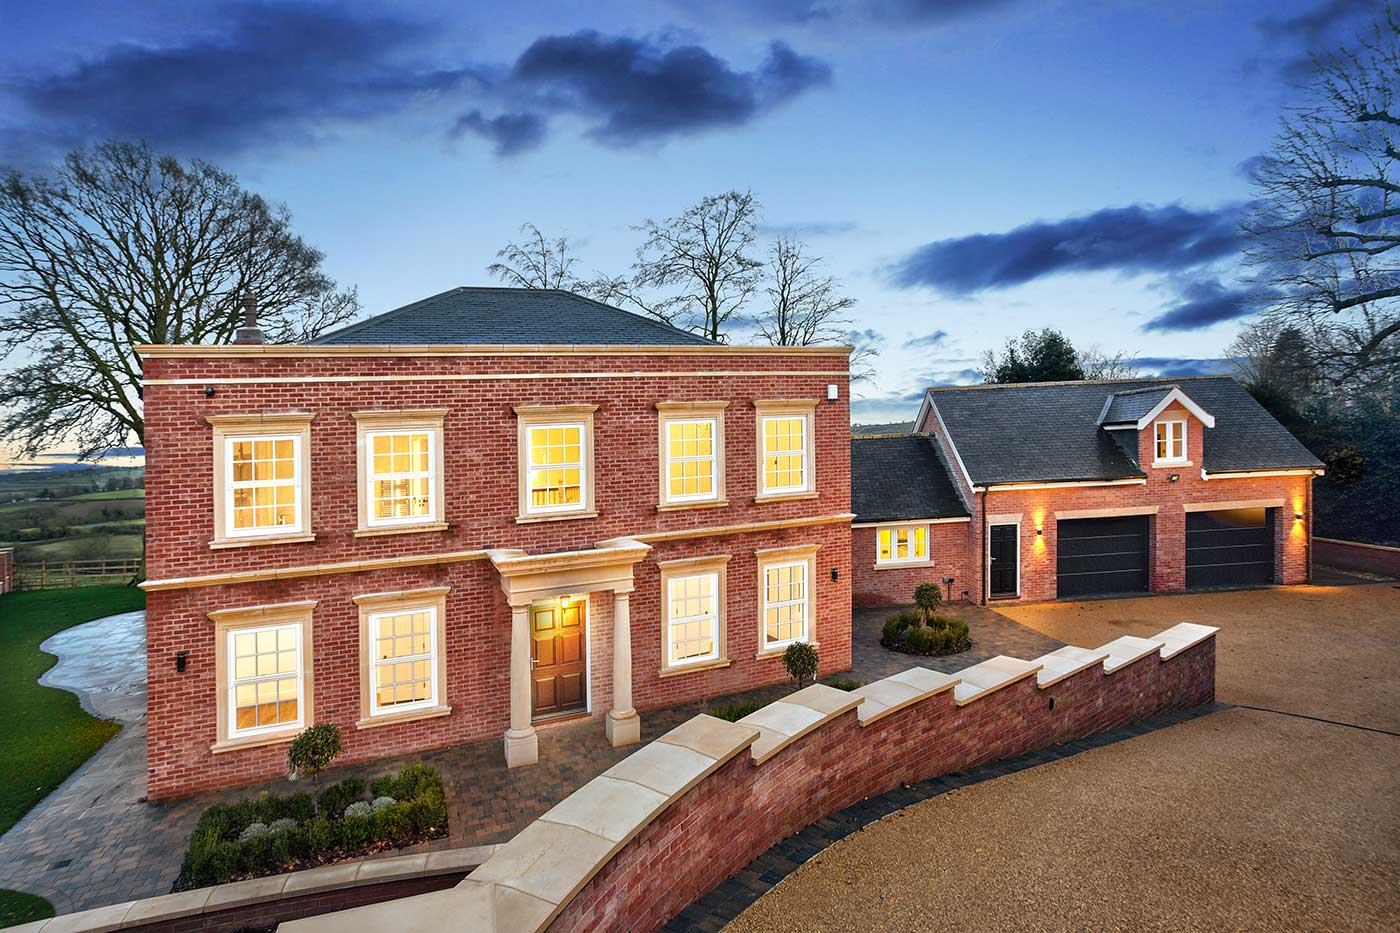 Twilight Exterior Photography in Petts Wood